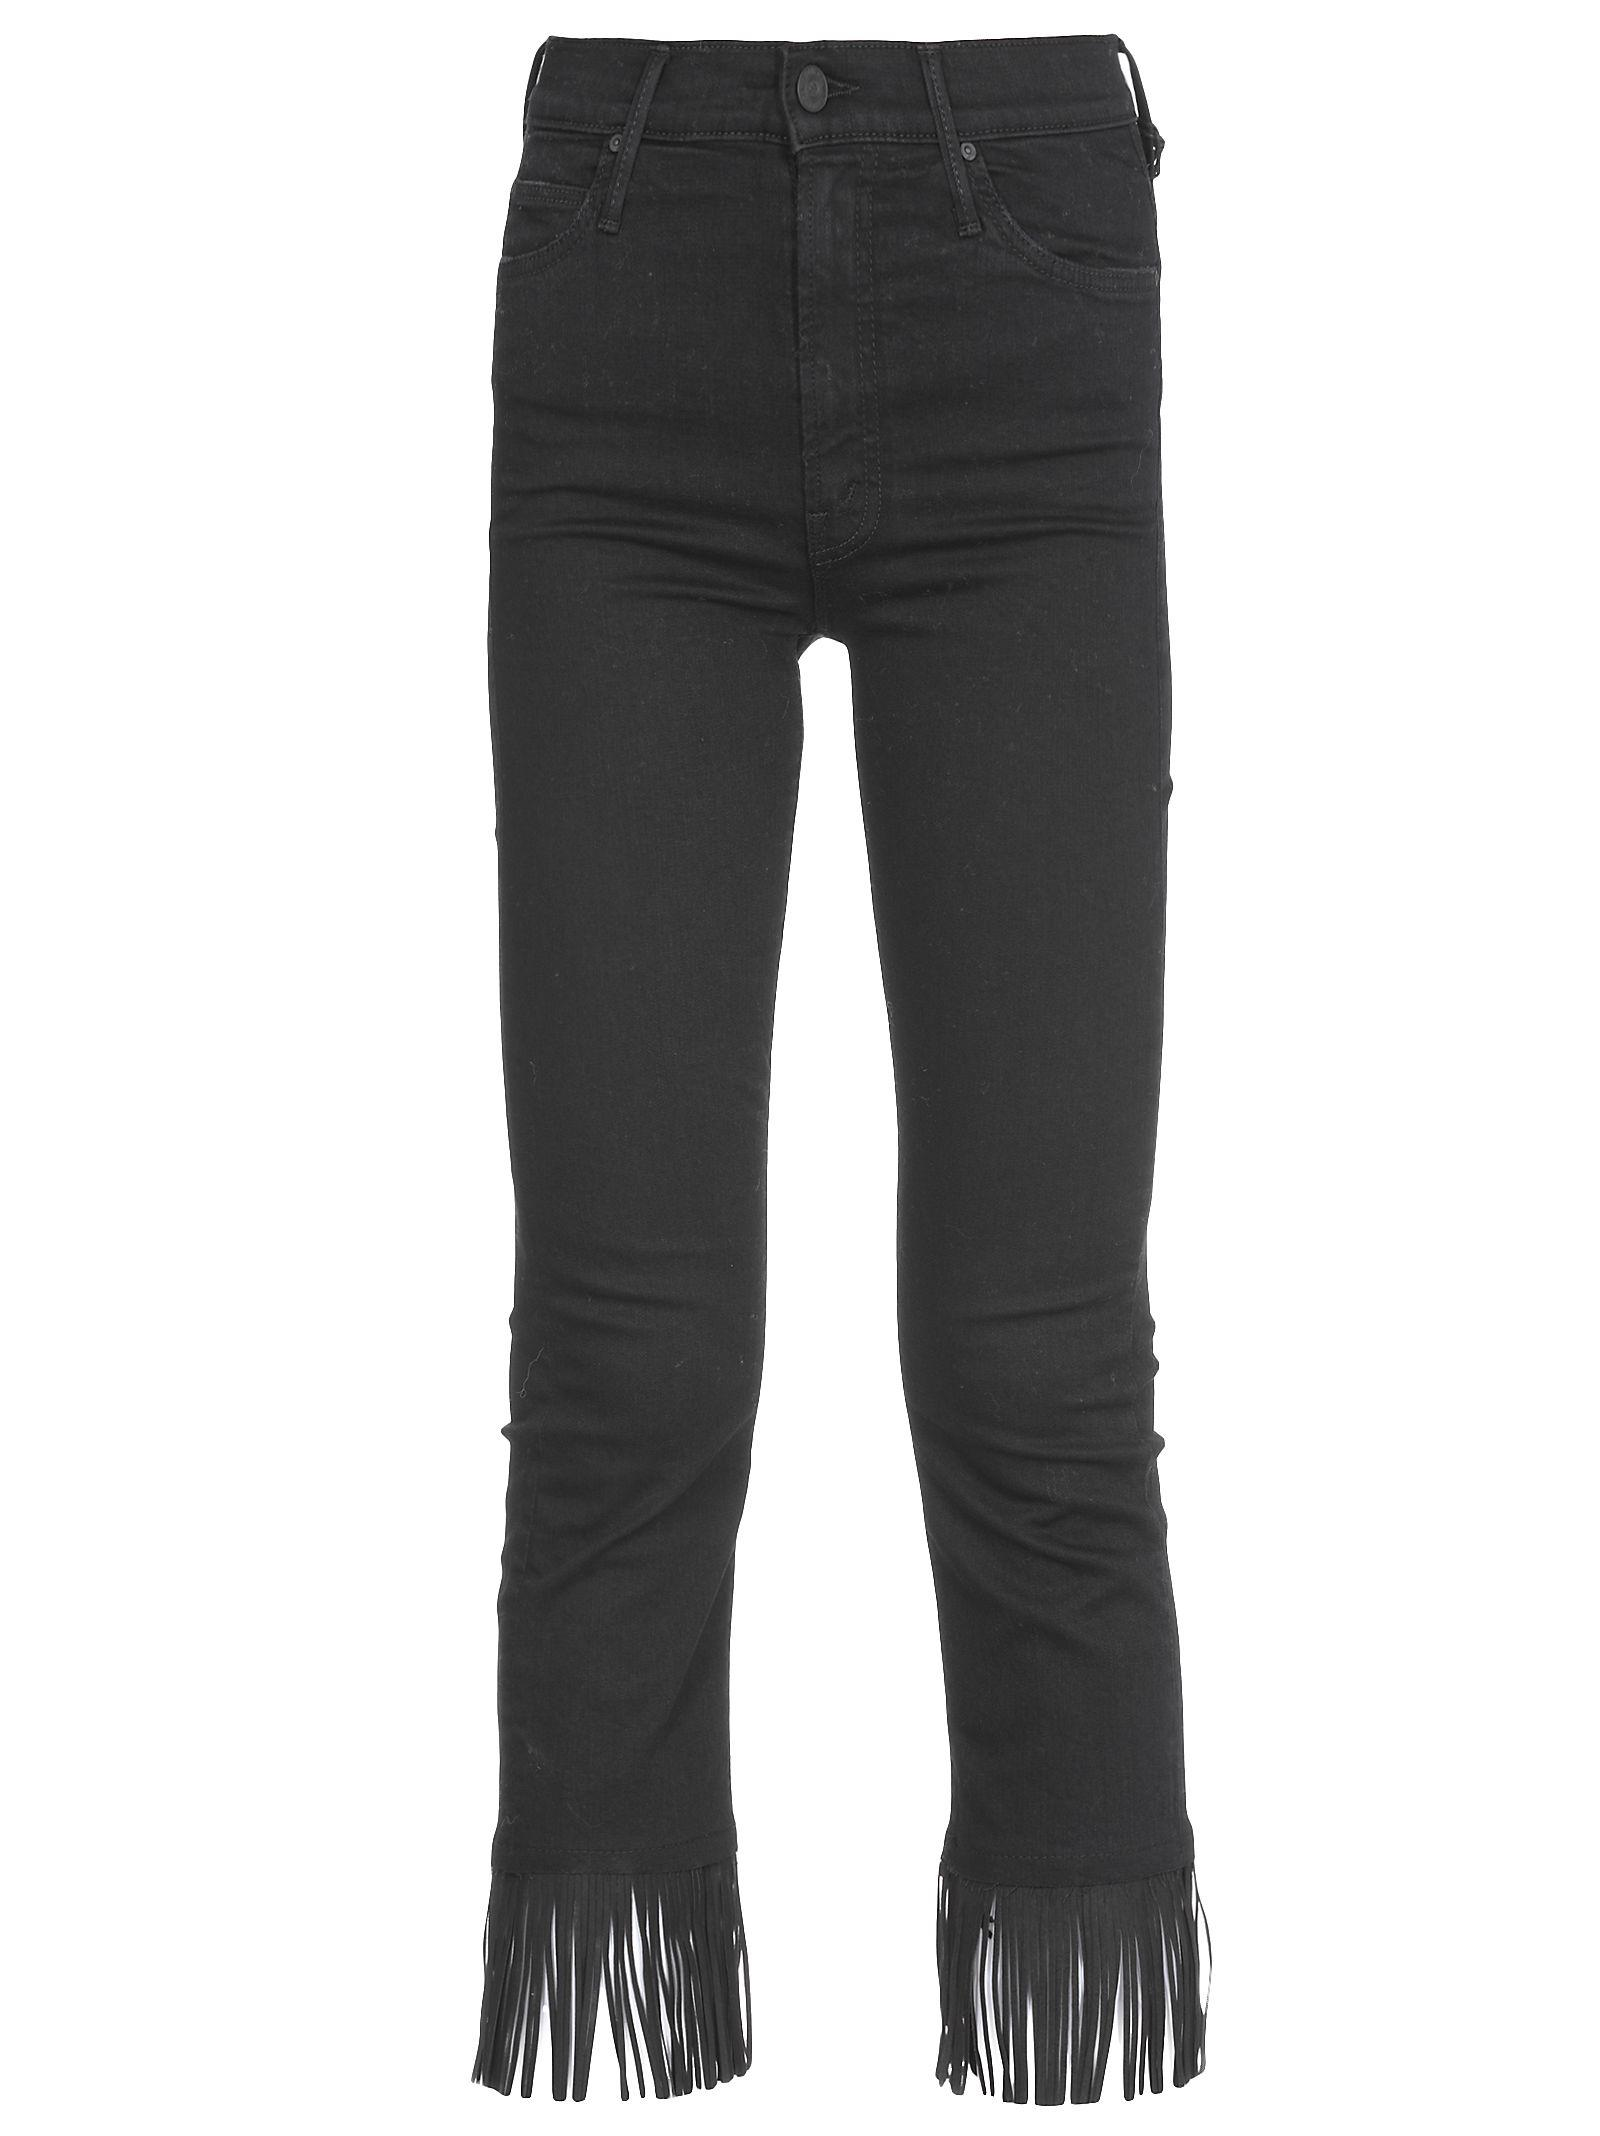 Mother Rascal Night Hawk Crop Fray Jeans In Black